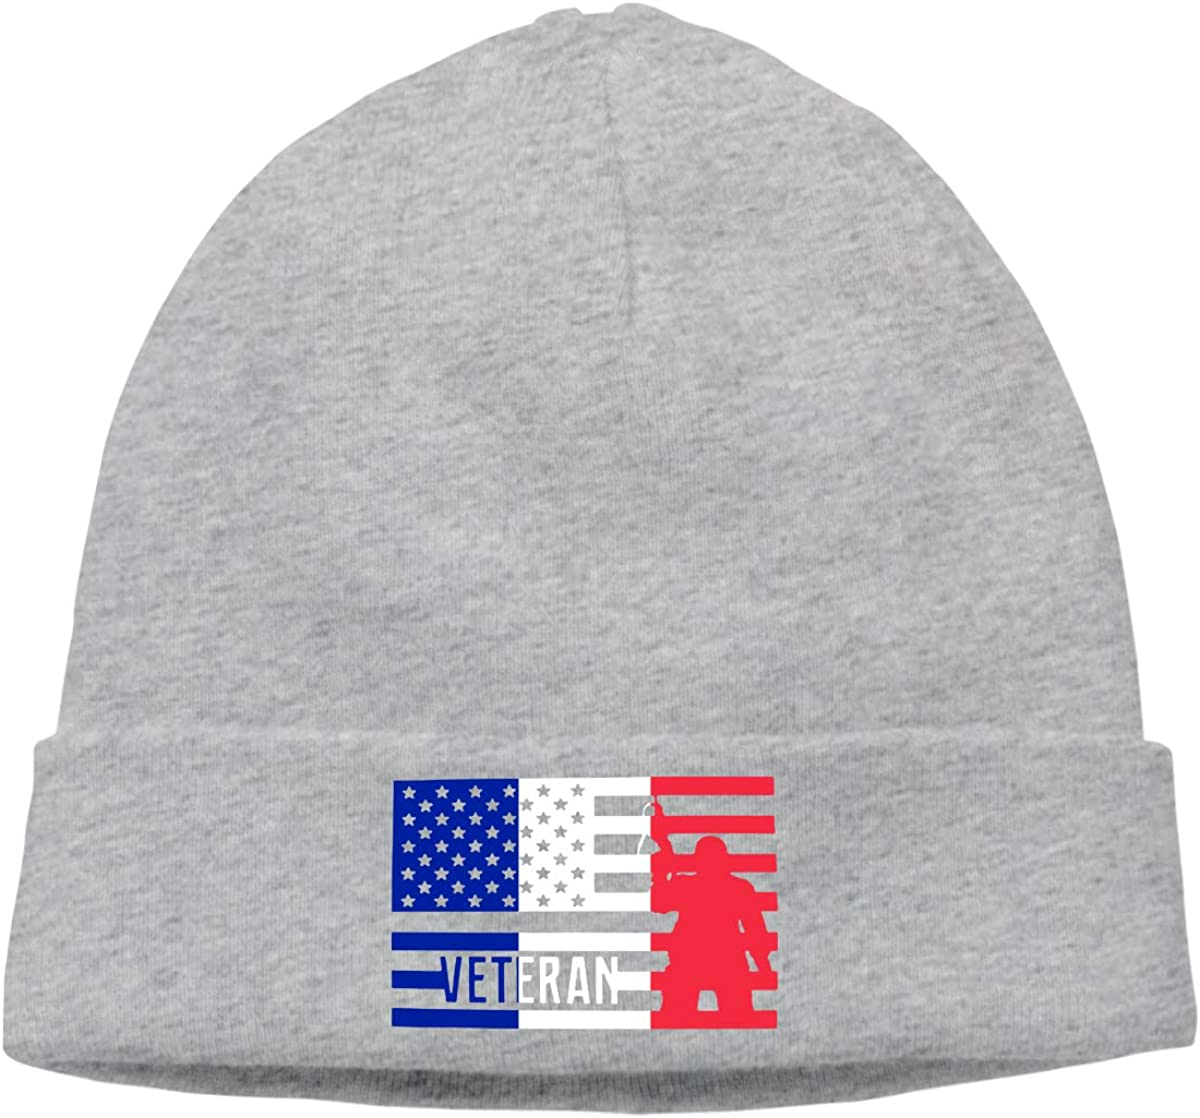 Stretchy /& Soft Winter Cap Thin Veteran American France Flag Men /& Women Solid Color Beanie Hat